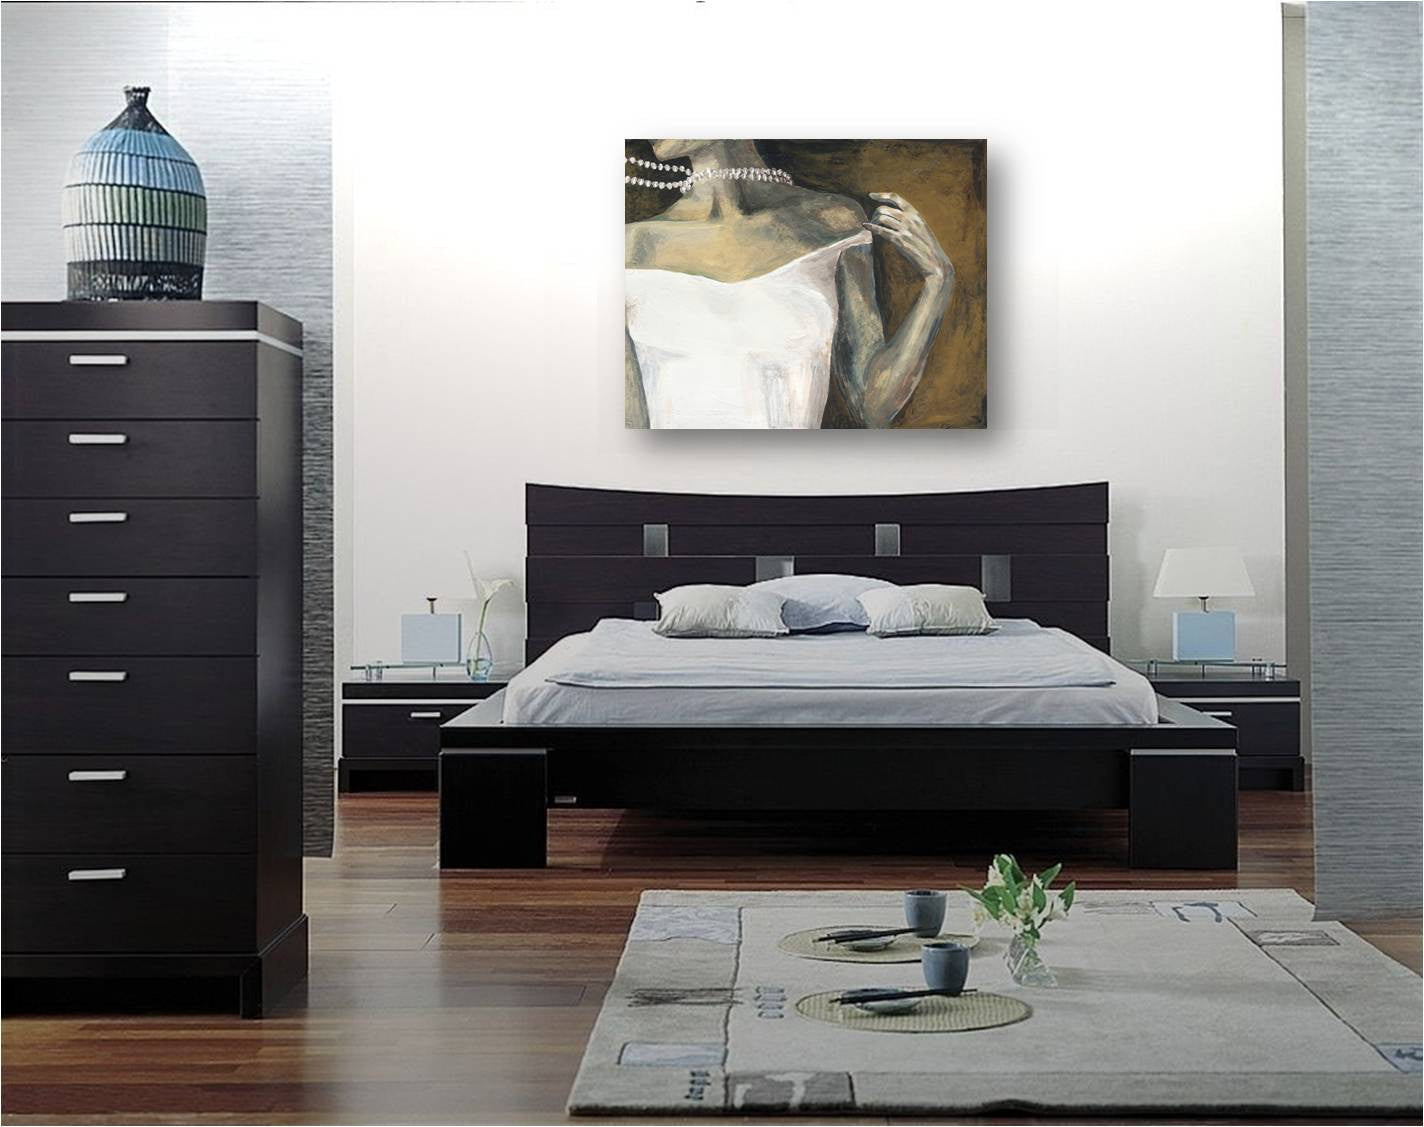 Sexy Parisian extra LARGE wall art canvas print figurative artwork modern home decor